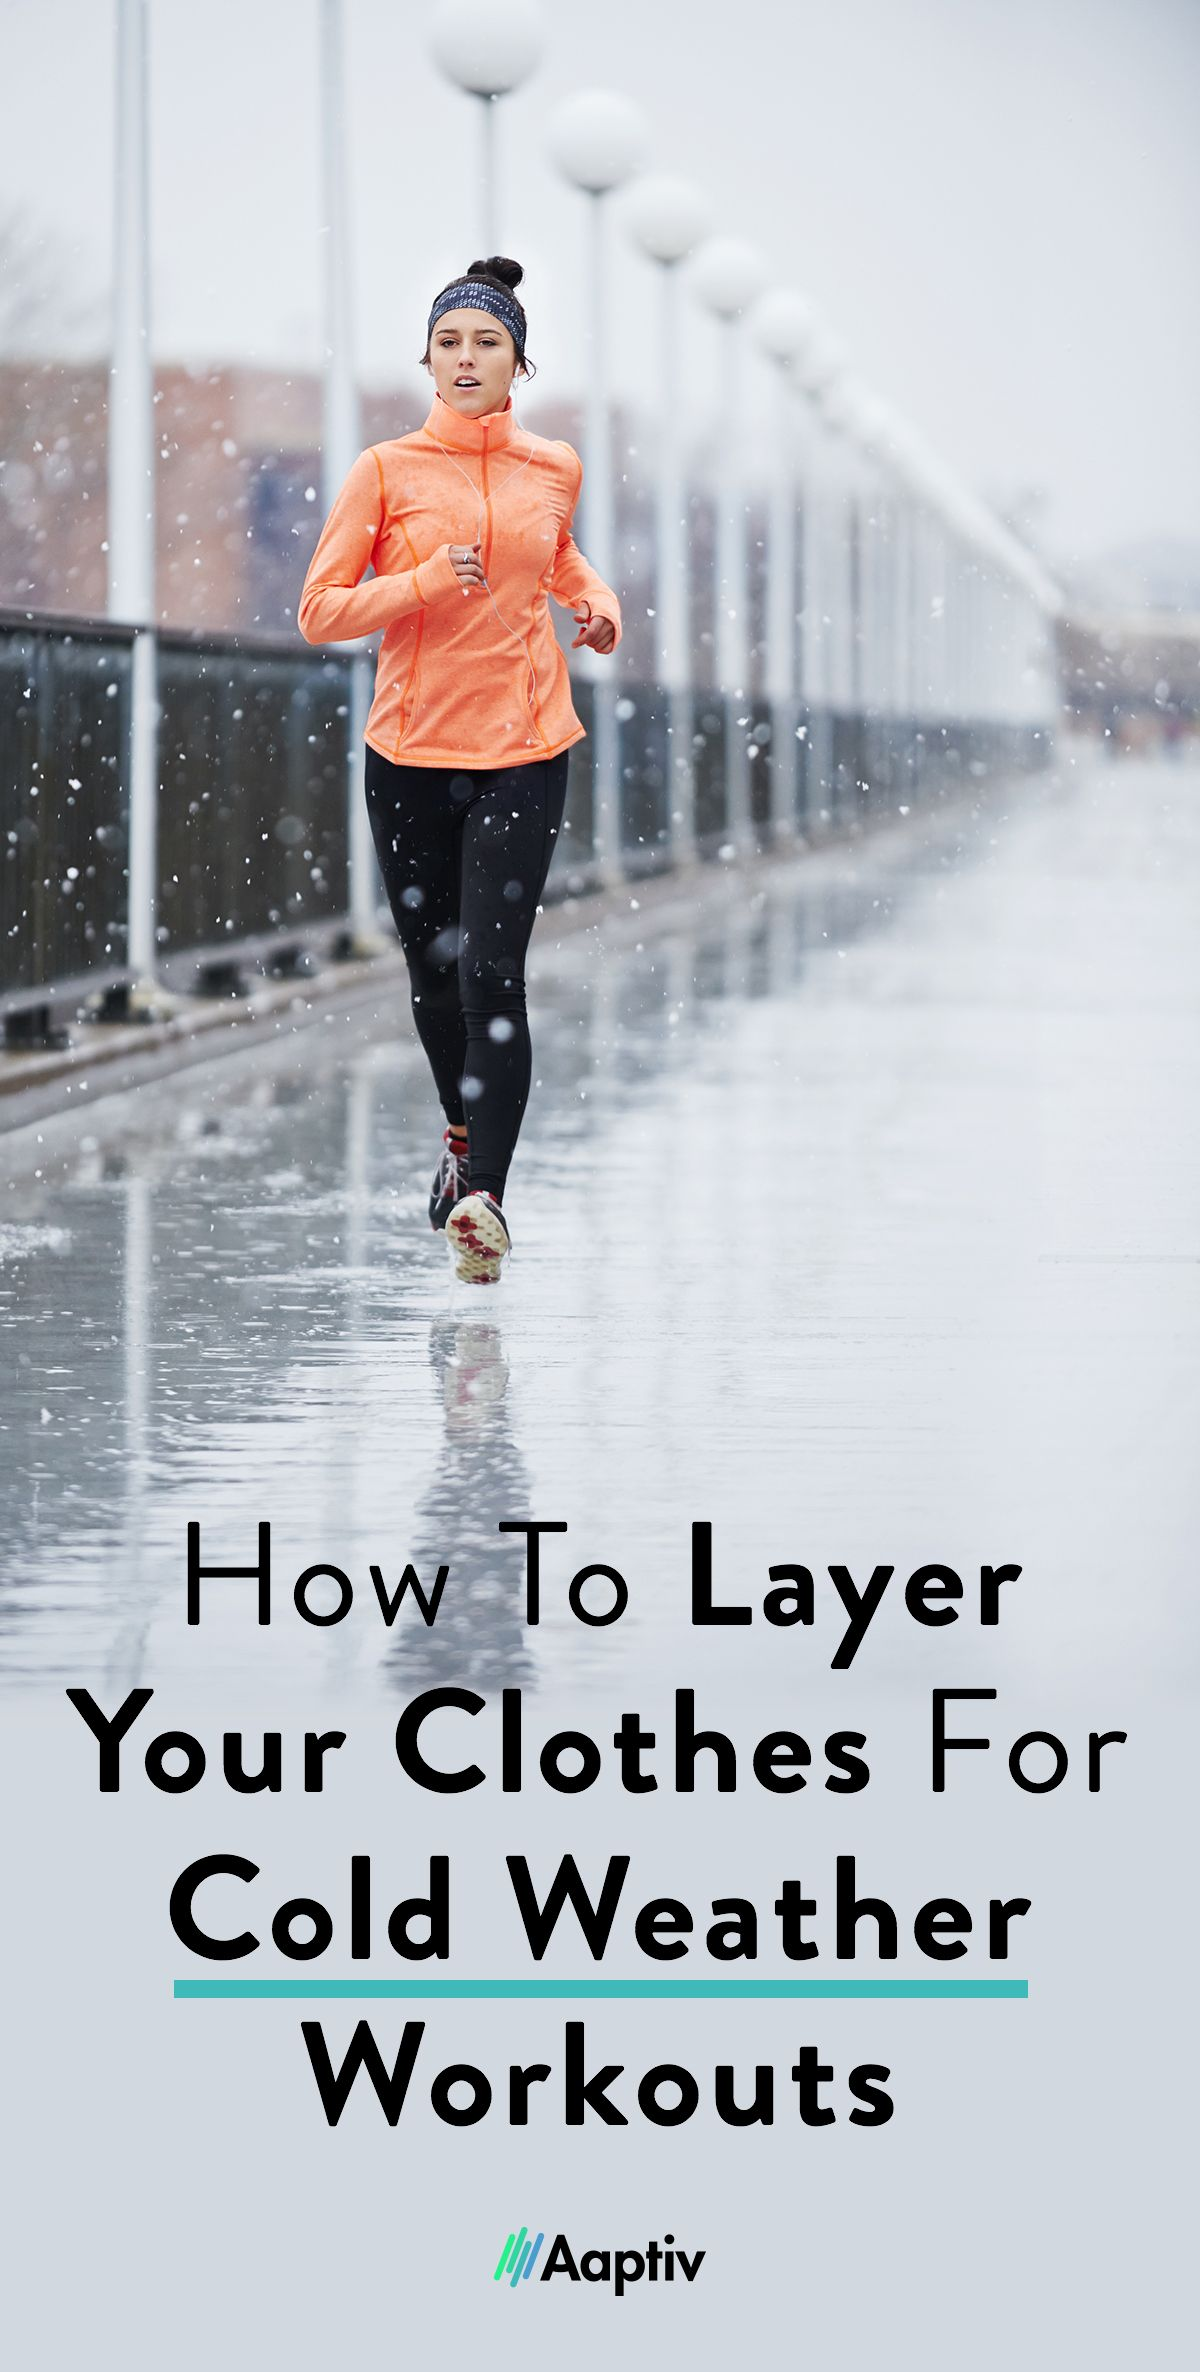 How to Layer Your Clothes for Cold Weather Workouts - Aaptiv